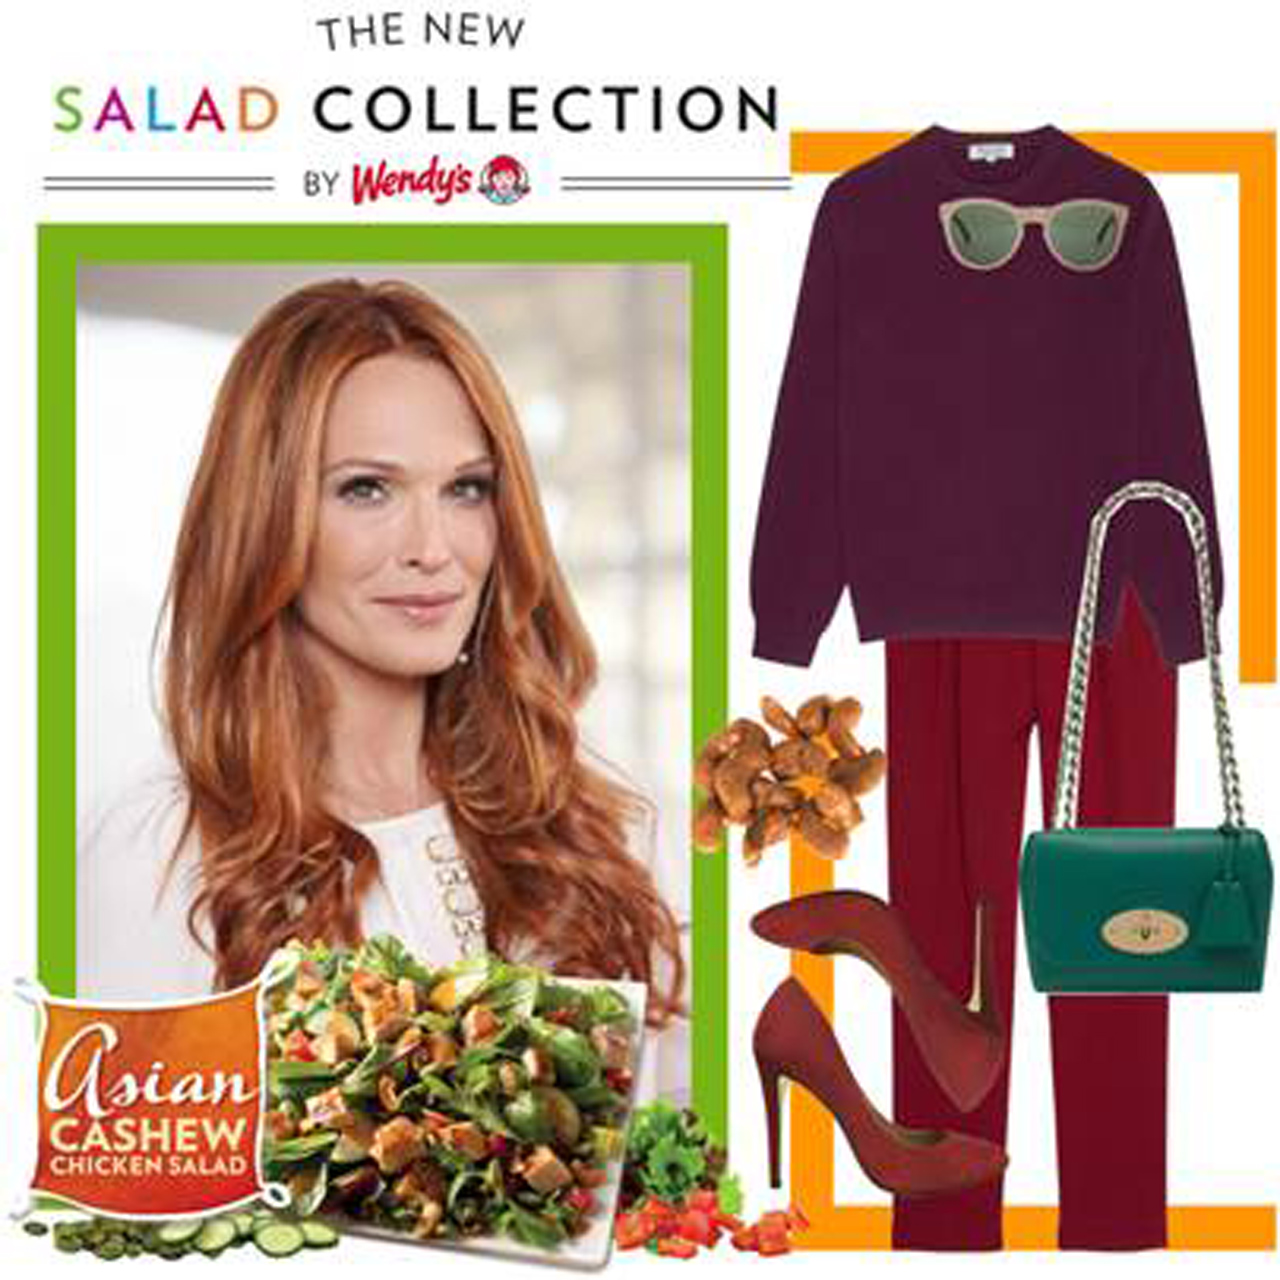 Wendy's new salad collection polyvore contest